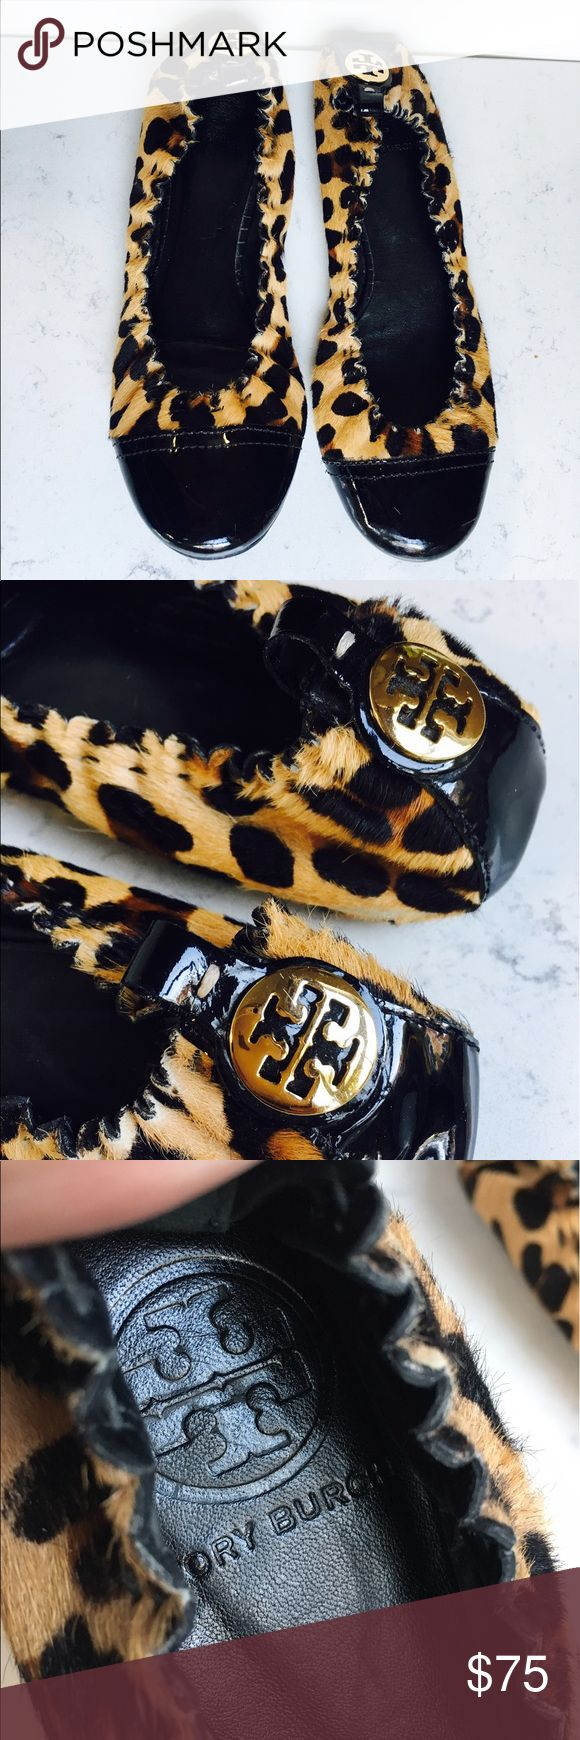 ❤️Tory Burch Abbey Leopard Hair Calf Ballet Flat❤️ Tory Burch Abbey Leopard Hair Calf Ballet Flat in good used condition check pics 0156725467 Tory Burch Shoes Flats & Loafers